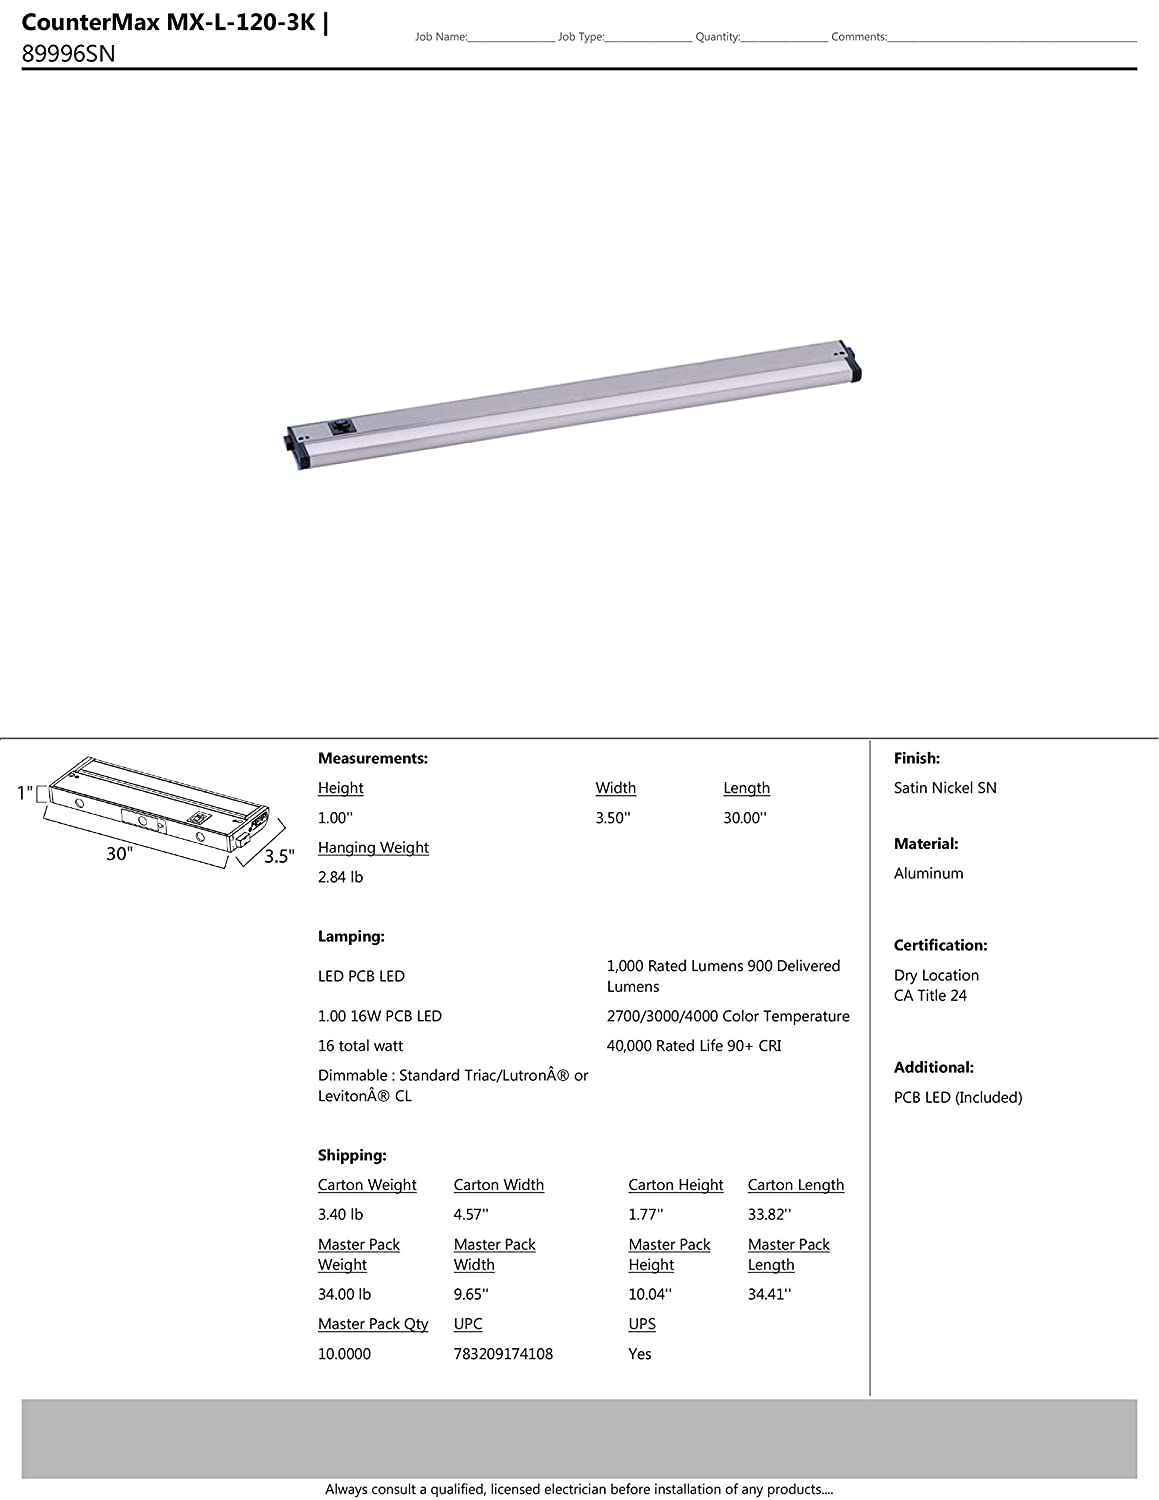 PCB LED Bulb Shade Material Satin Nickel Finish Dry Safety Rating Glass 60W Max. Maxim 89996SN CounterMax MX-L-120-3K 30 2700-4000K LED UC Rated Lumens Standard Dimmable